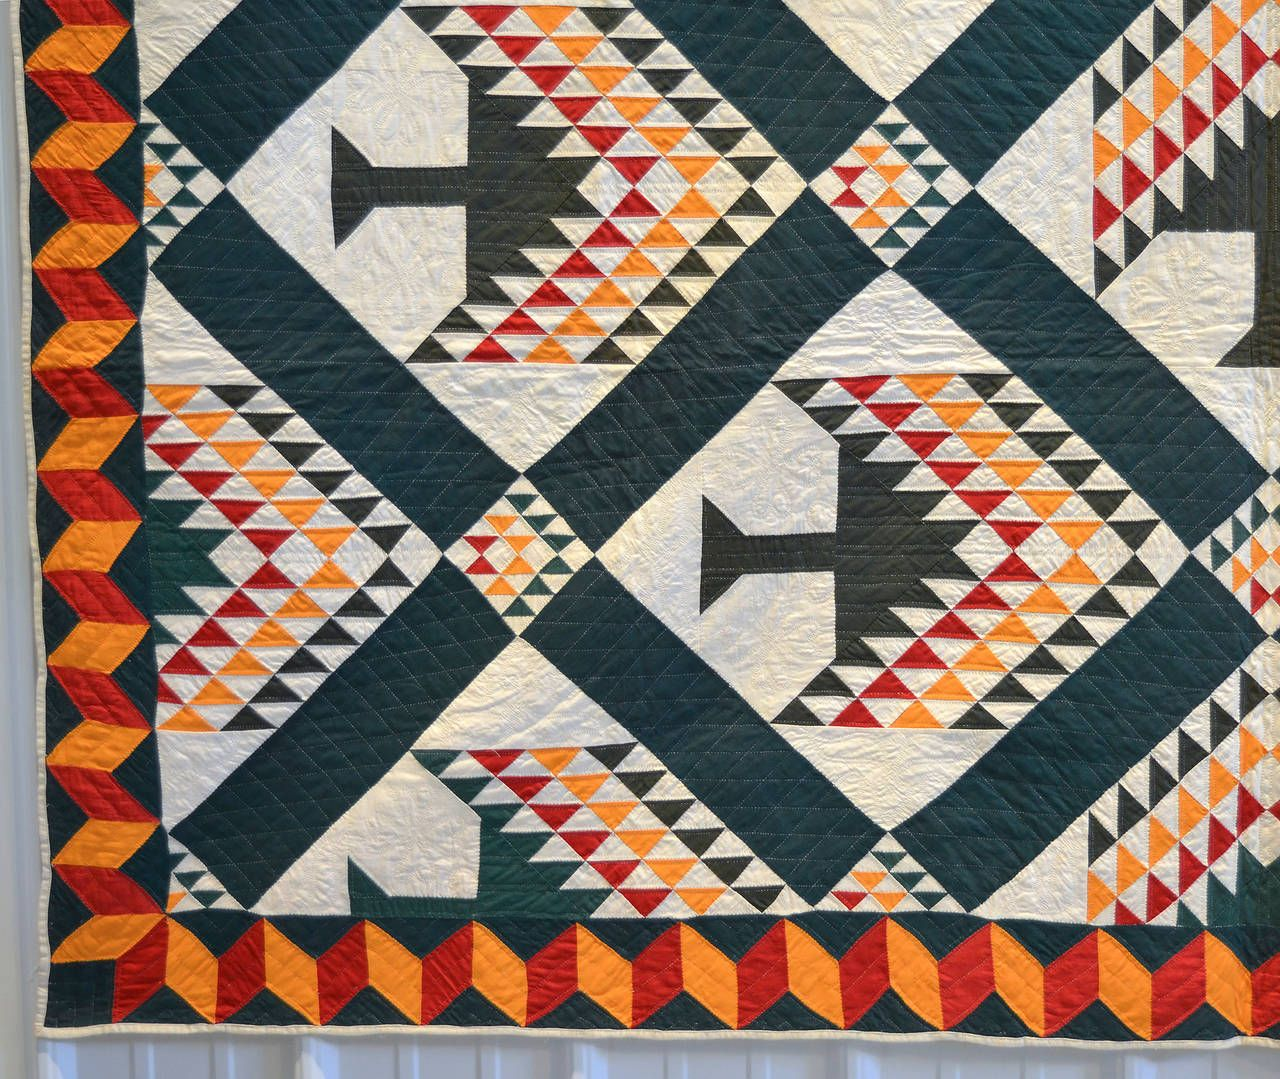 Pin By Alison Friesinger On Quilts Quilts Tree Quilt Antique Quilts